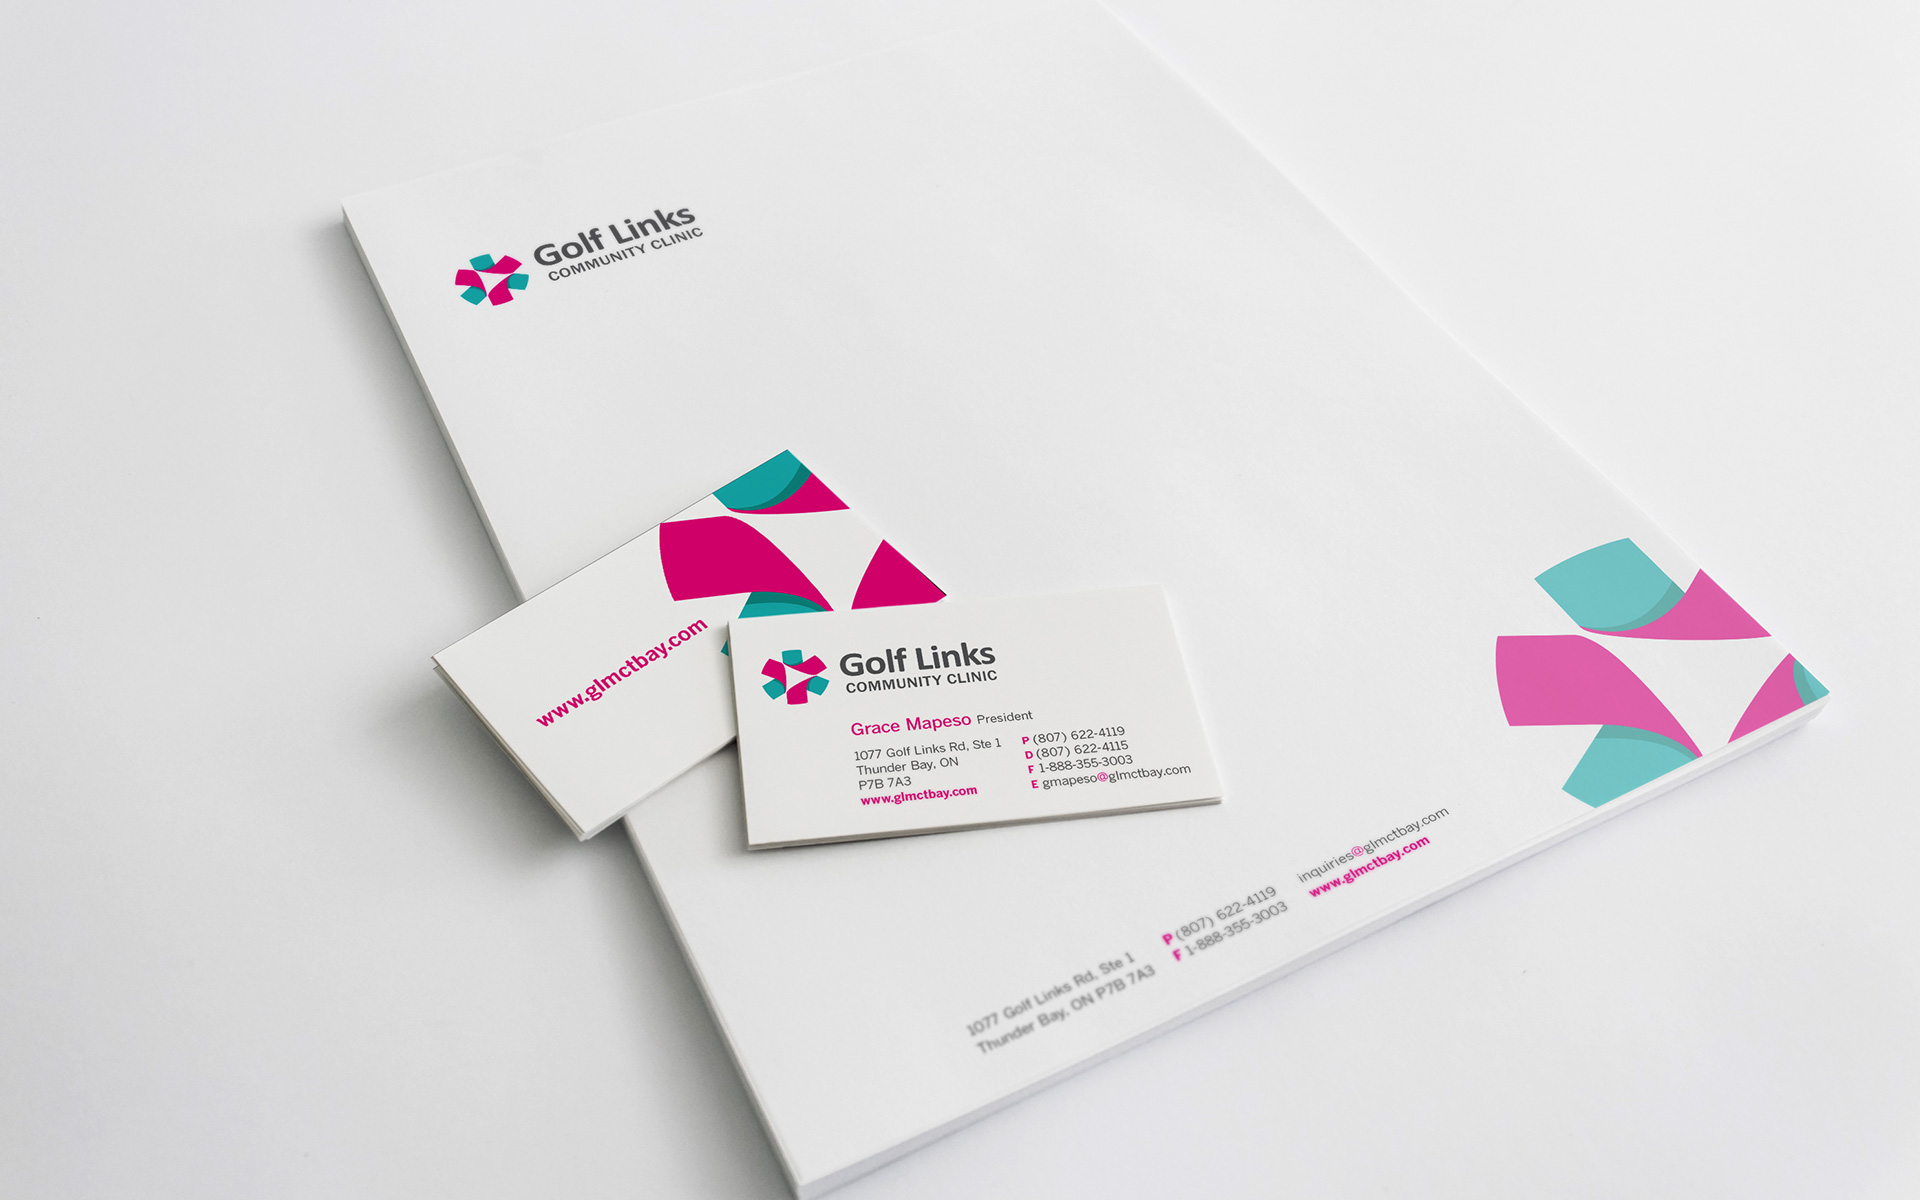 Golf Links Community Clinic Stationery